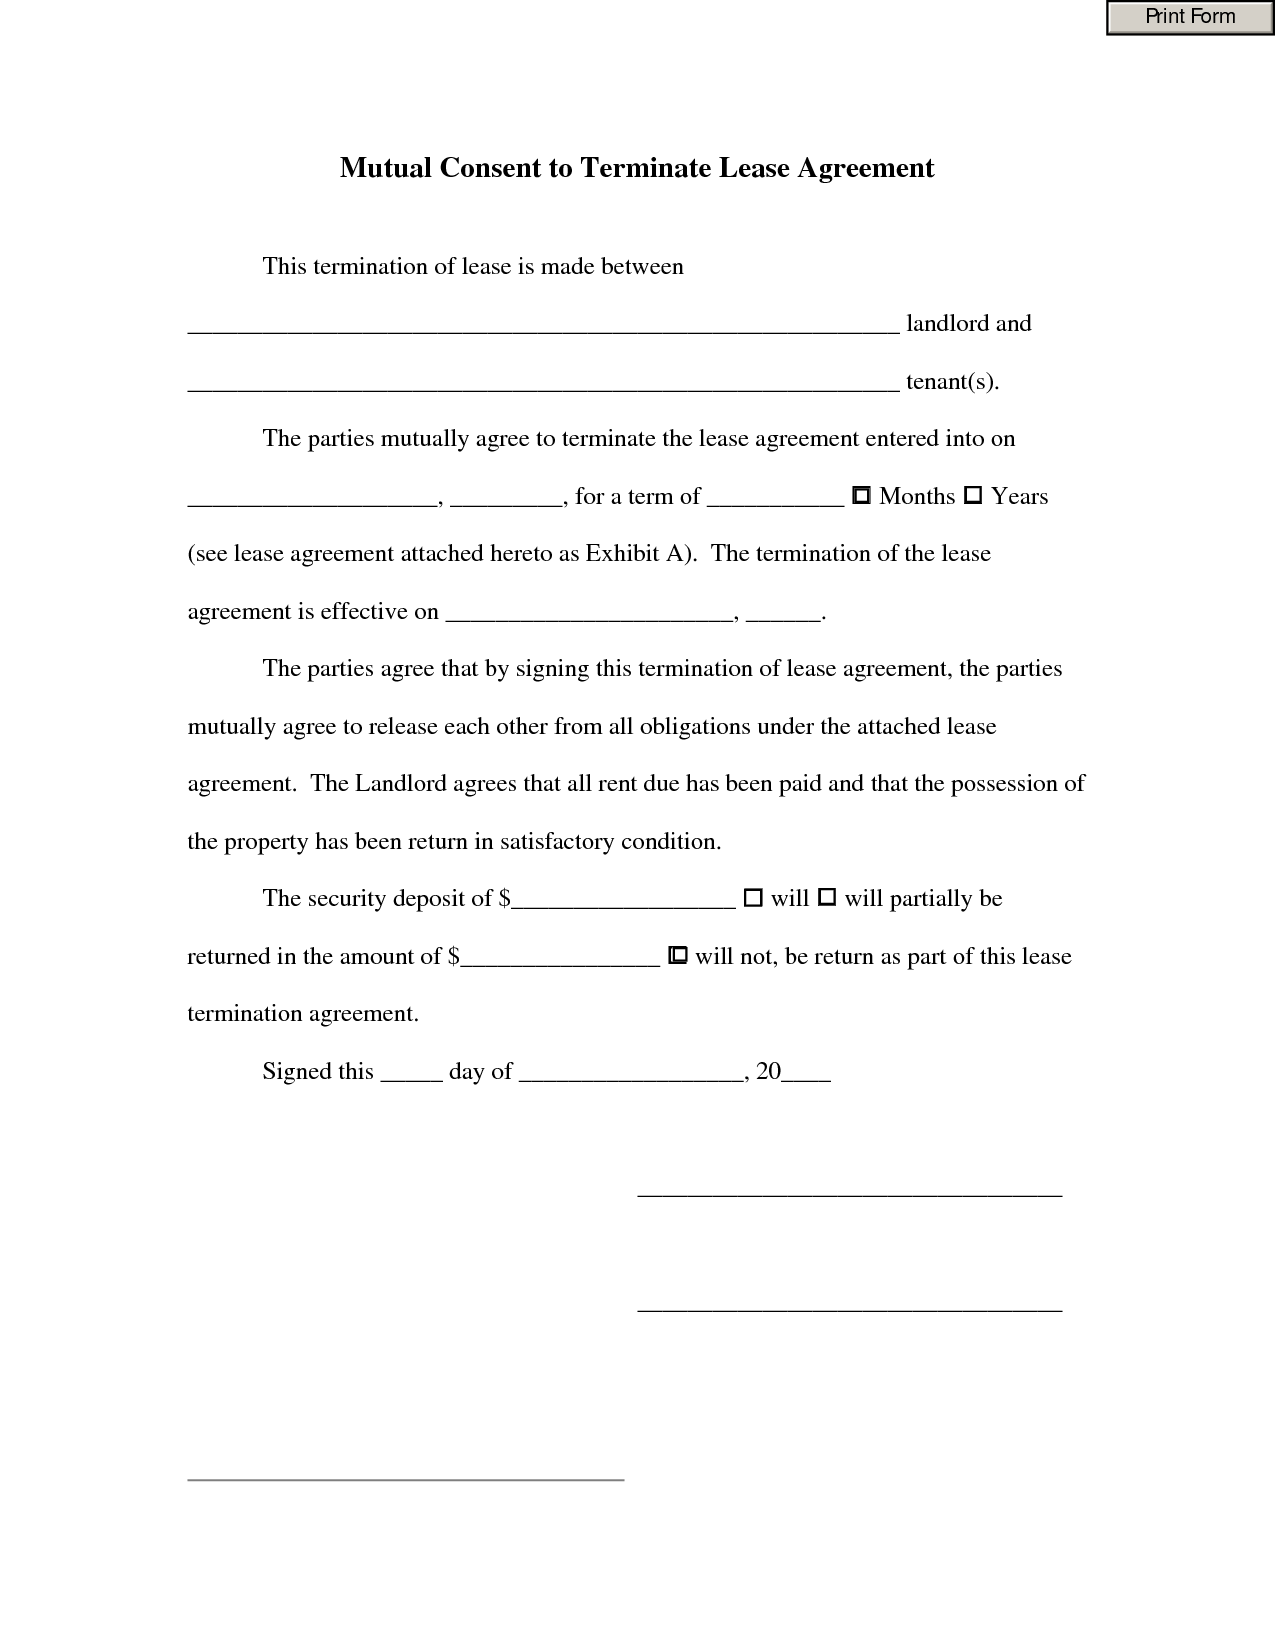 Mutual Consent To Terminate Lease Agreement By Fdh56Iuoui - Termination Of Lease  Agreement Form